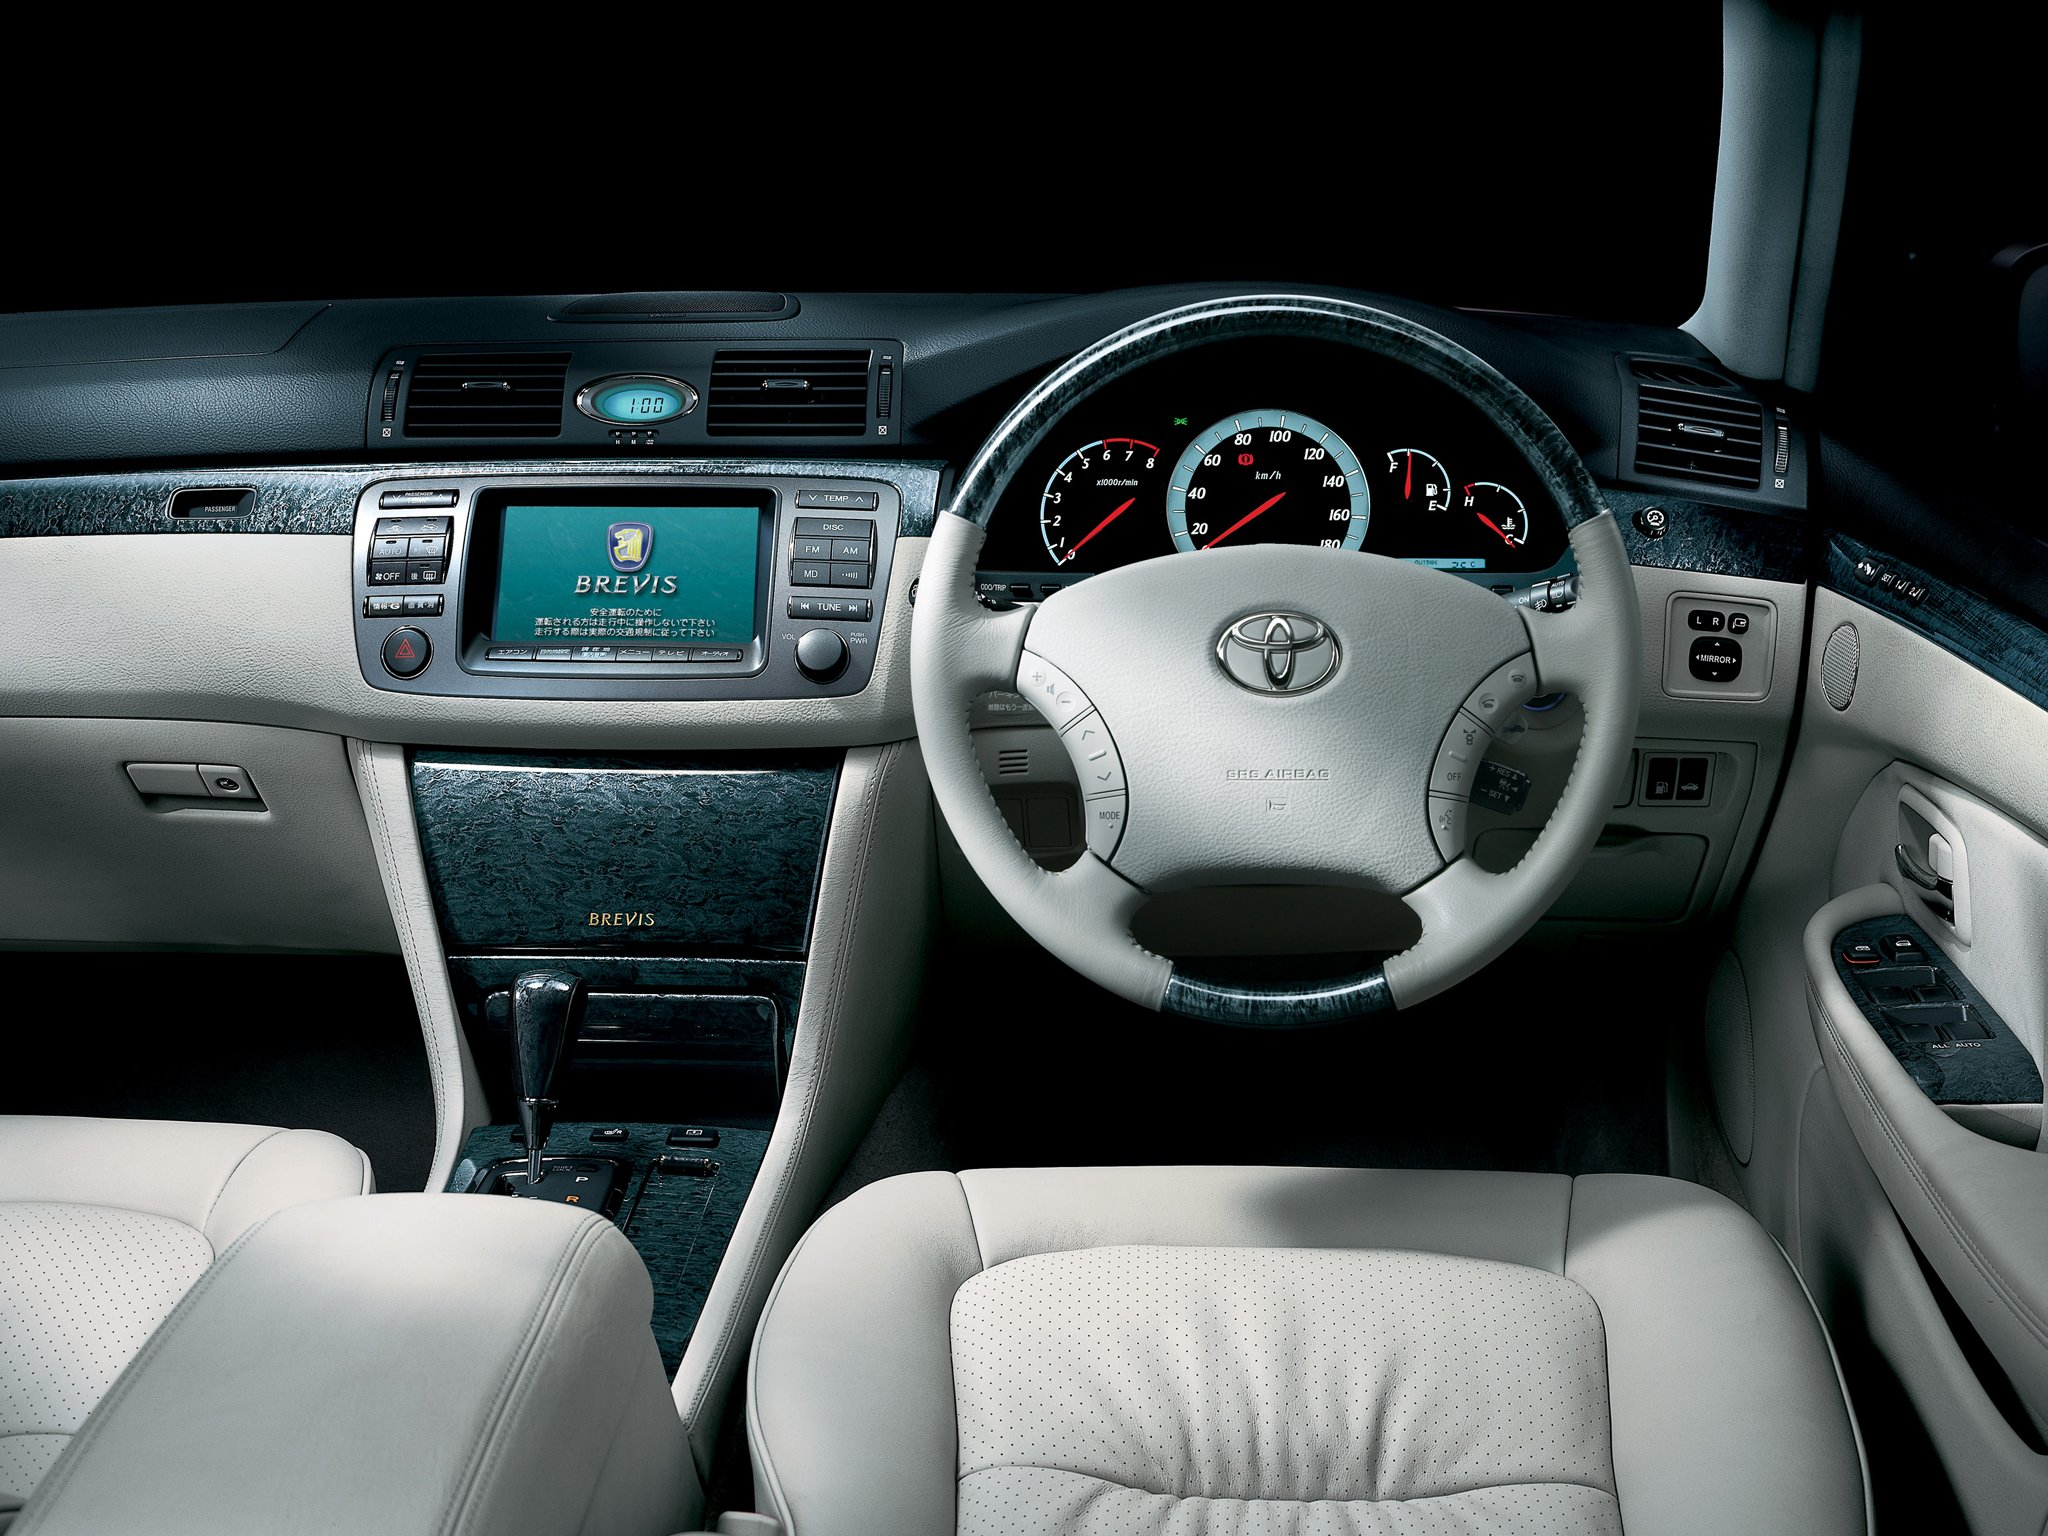 Toyota Brevis   pictures, information and specs - Auto-Database.com